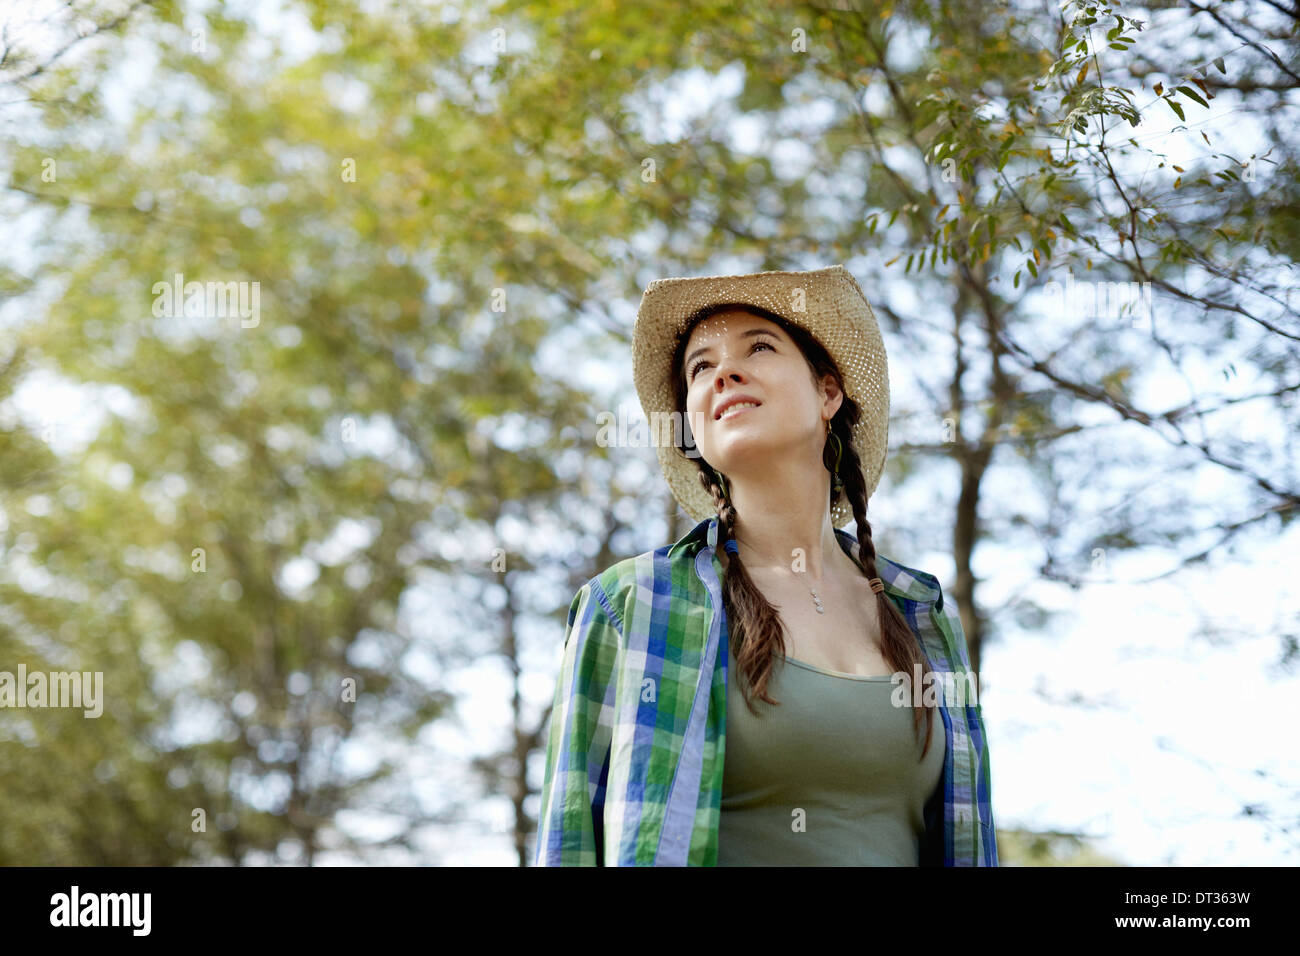 A girl in a straw hat walking in the woods - Stock Image